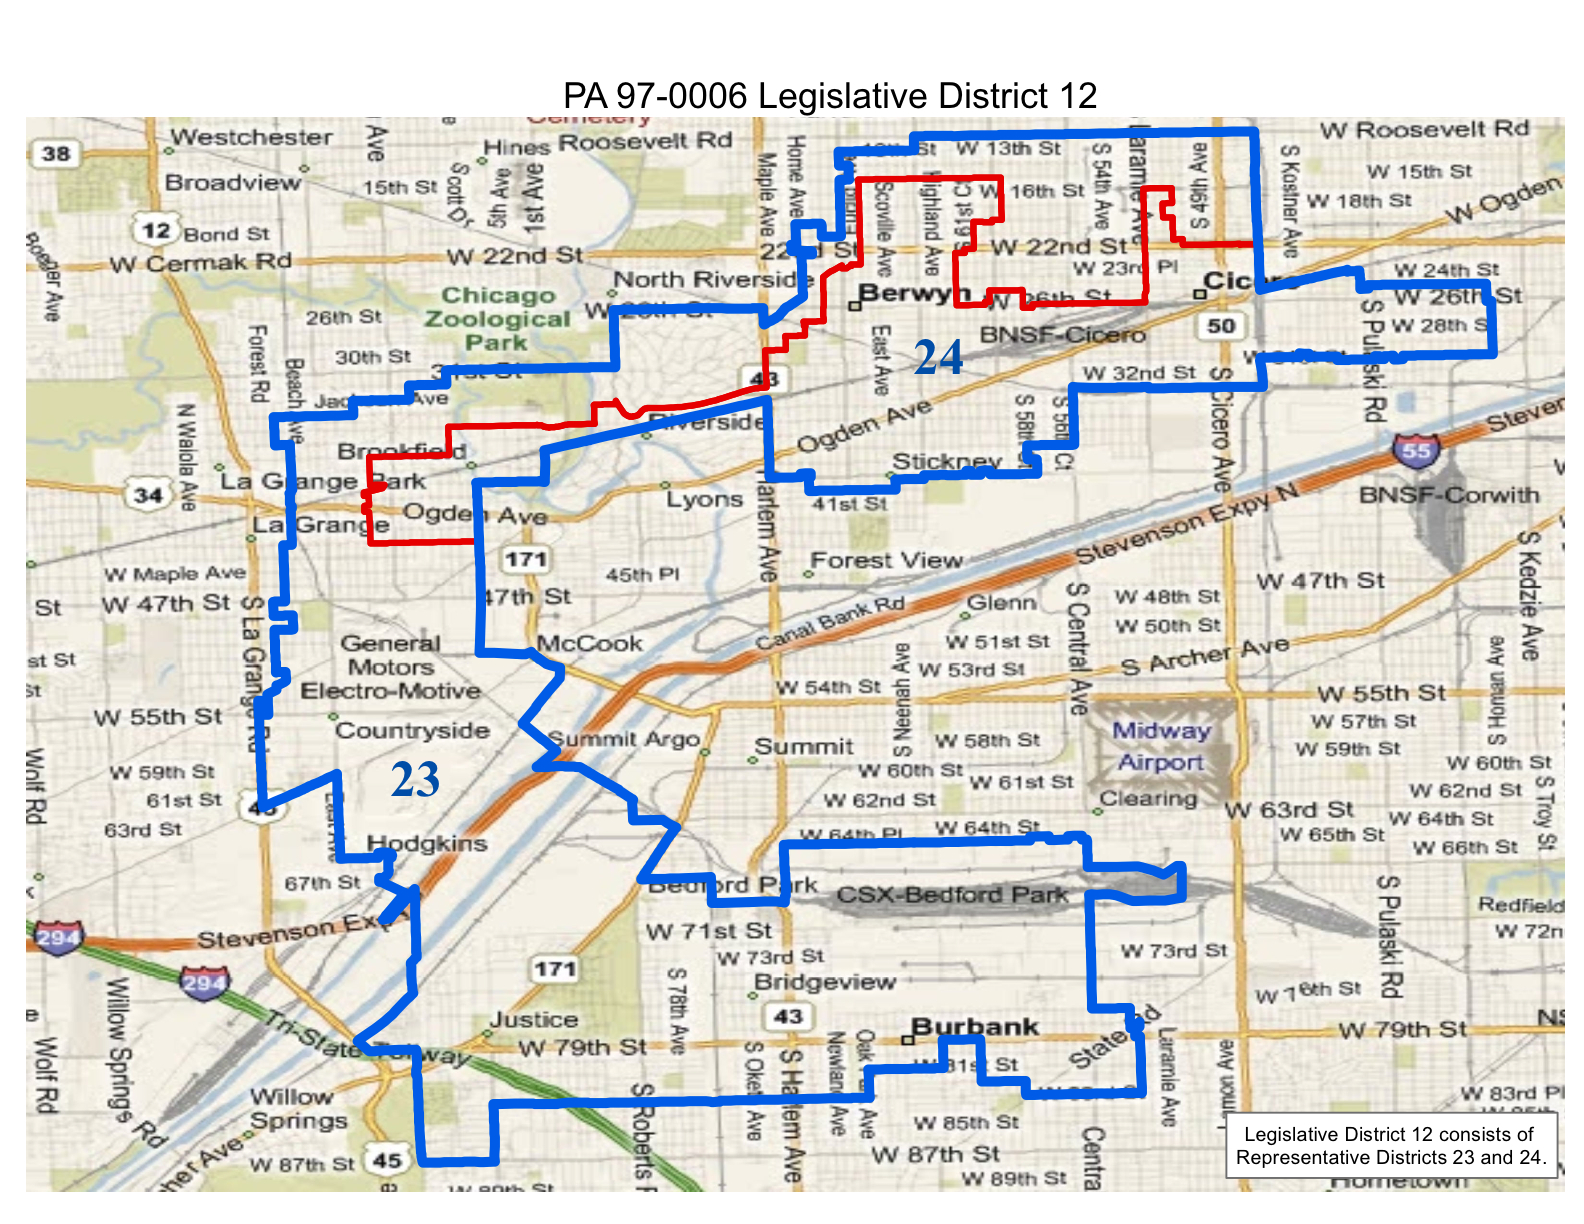 map of 2012 illinois legislative district 12 which includes state senate district 12 and state representative districts 23 and 24